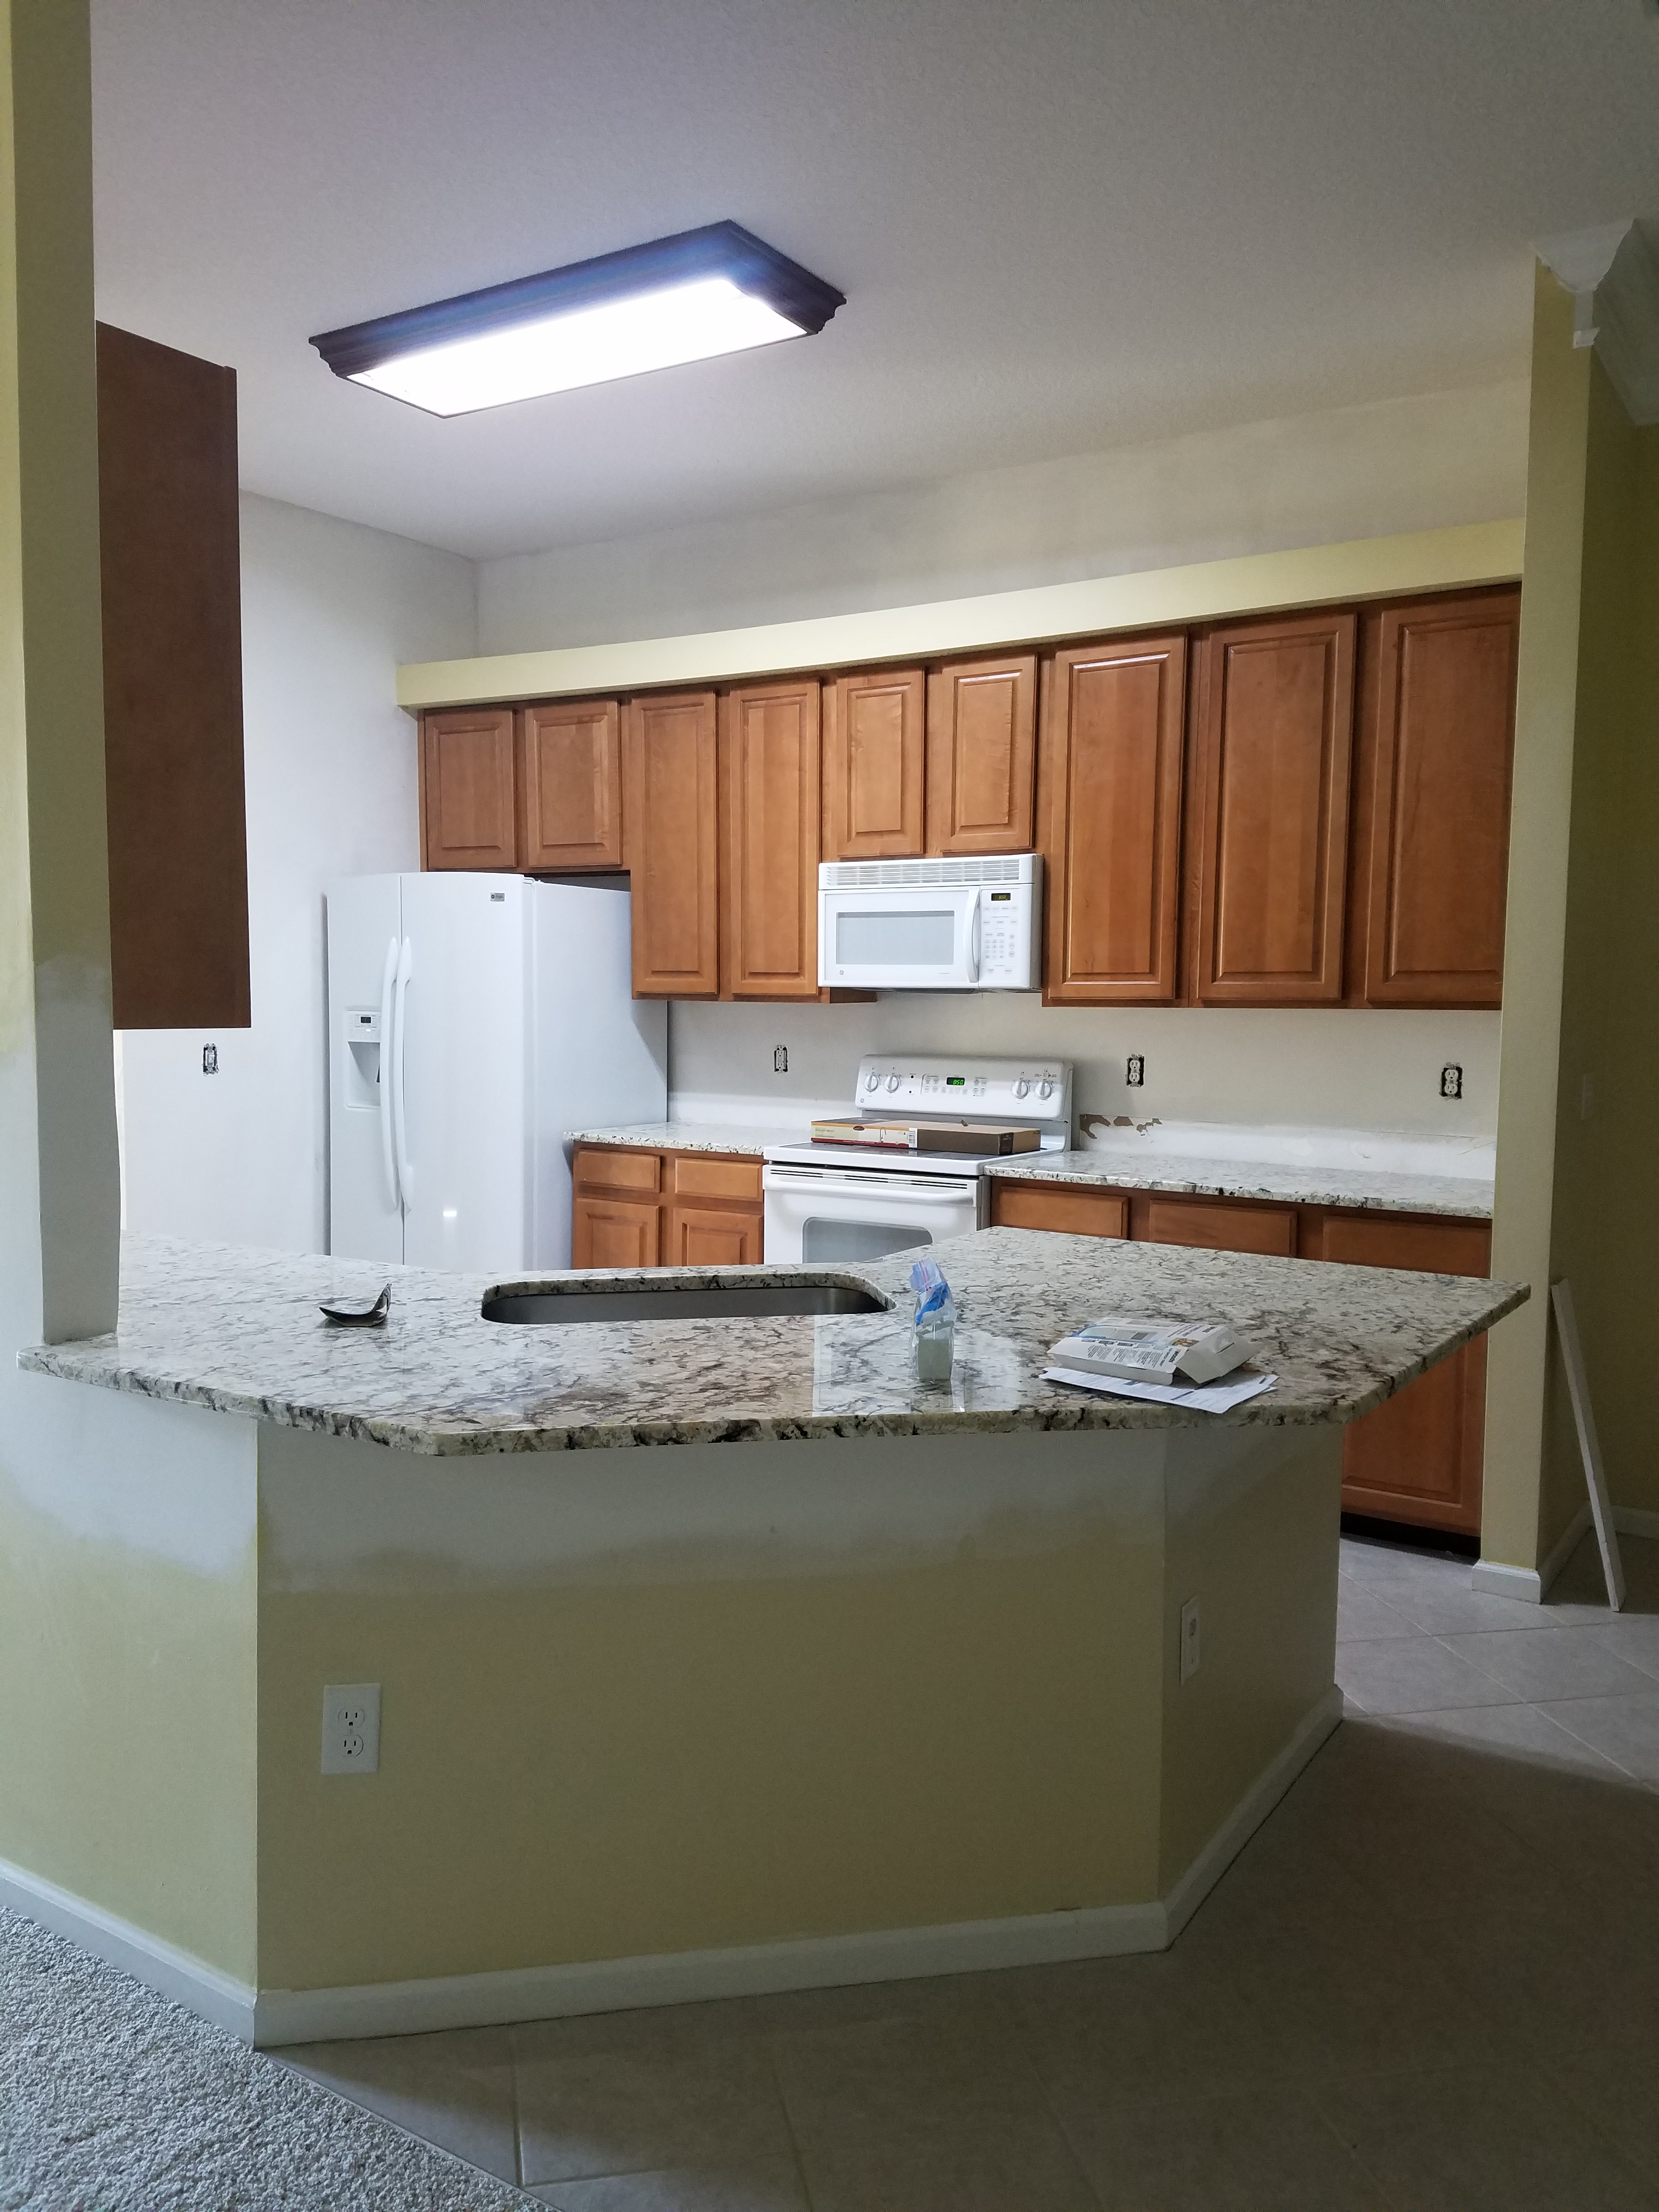 Cabinet staining and refinishing in st john s county for Catalyzed lacquer kitchen cabinets